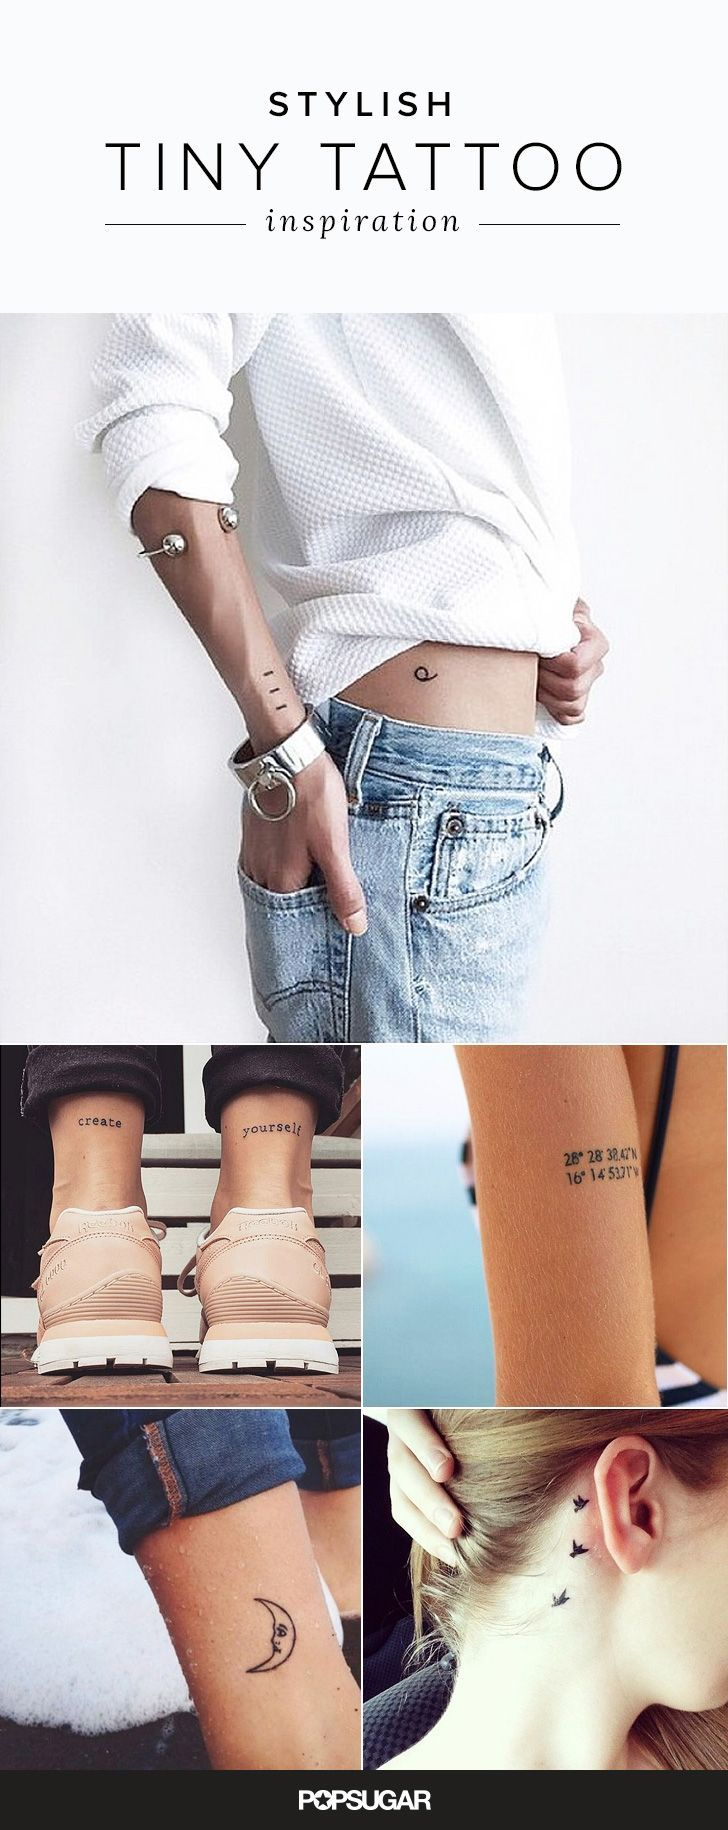 Tons of tiny tattoo inspiration that will make you want to get stylish tattoo.